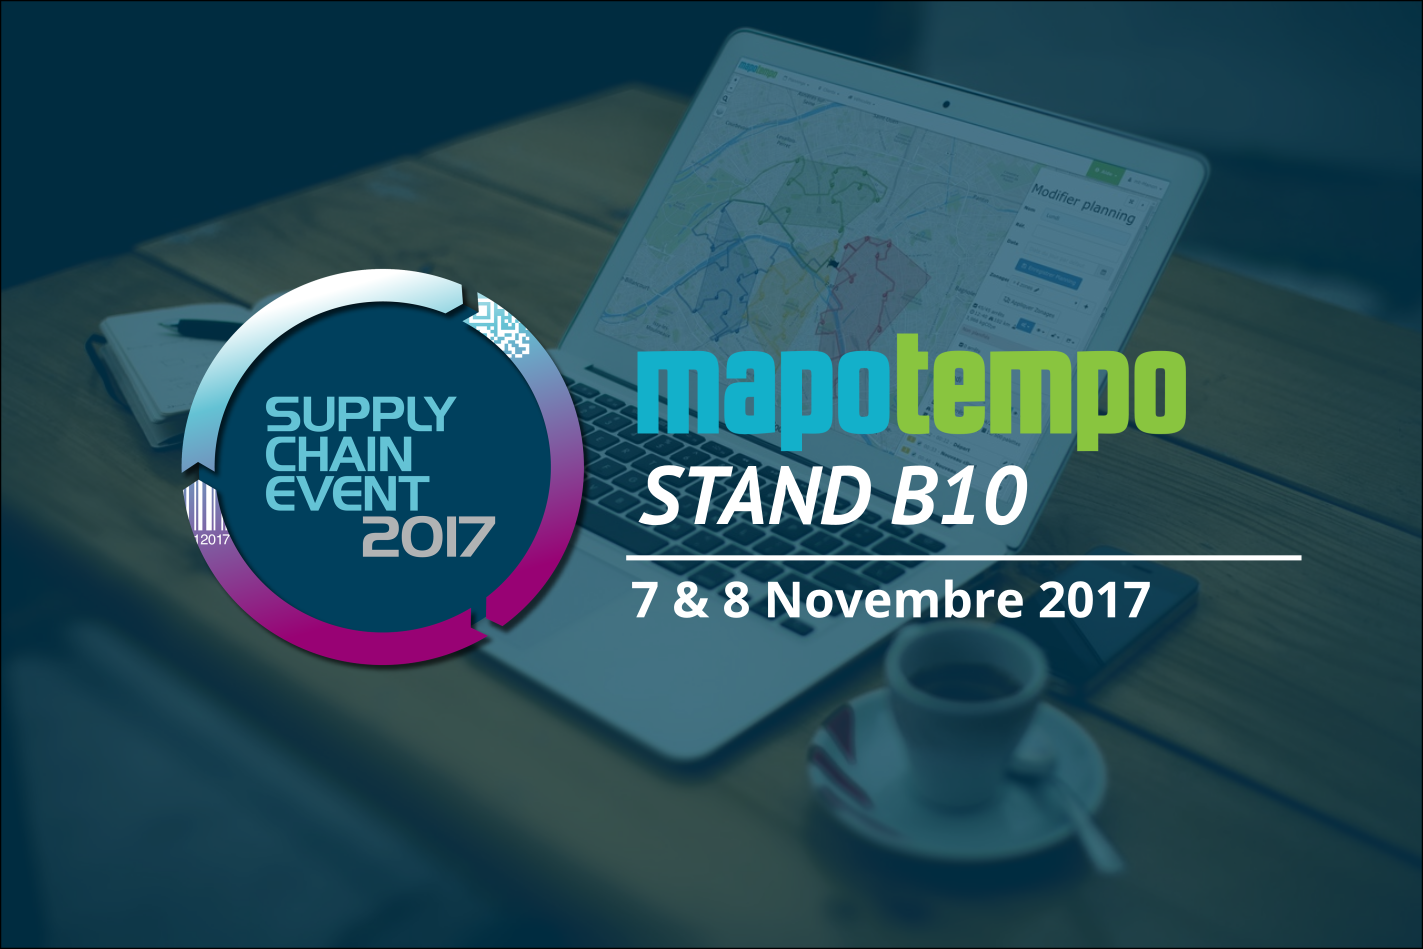 supply-chain-event-2017-mapotempo